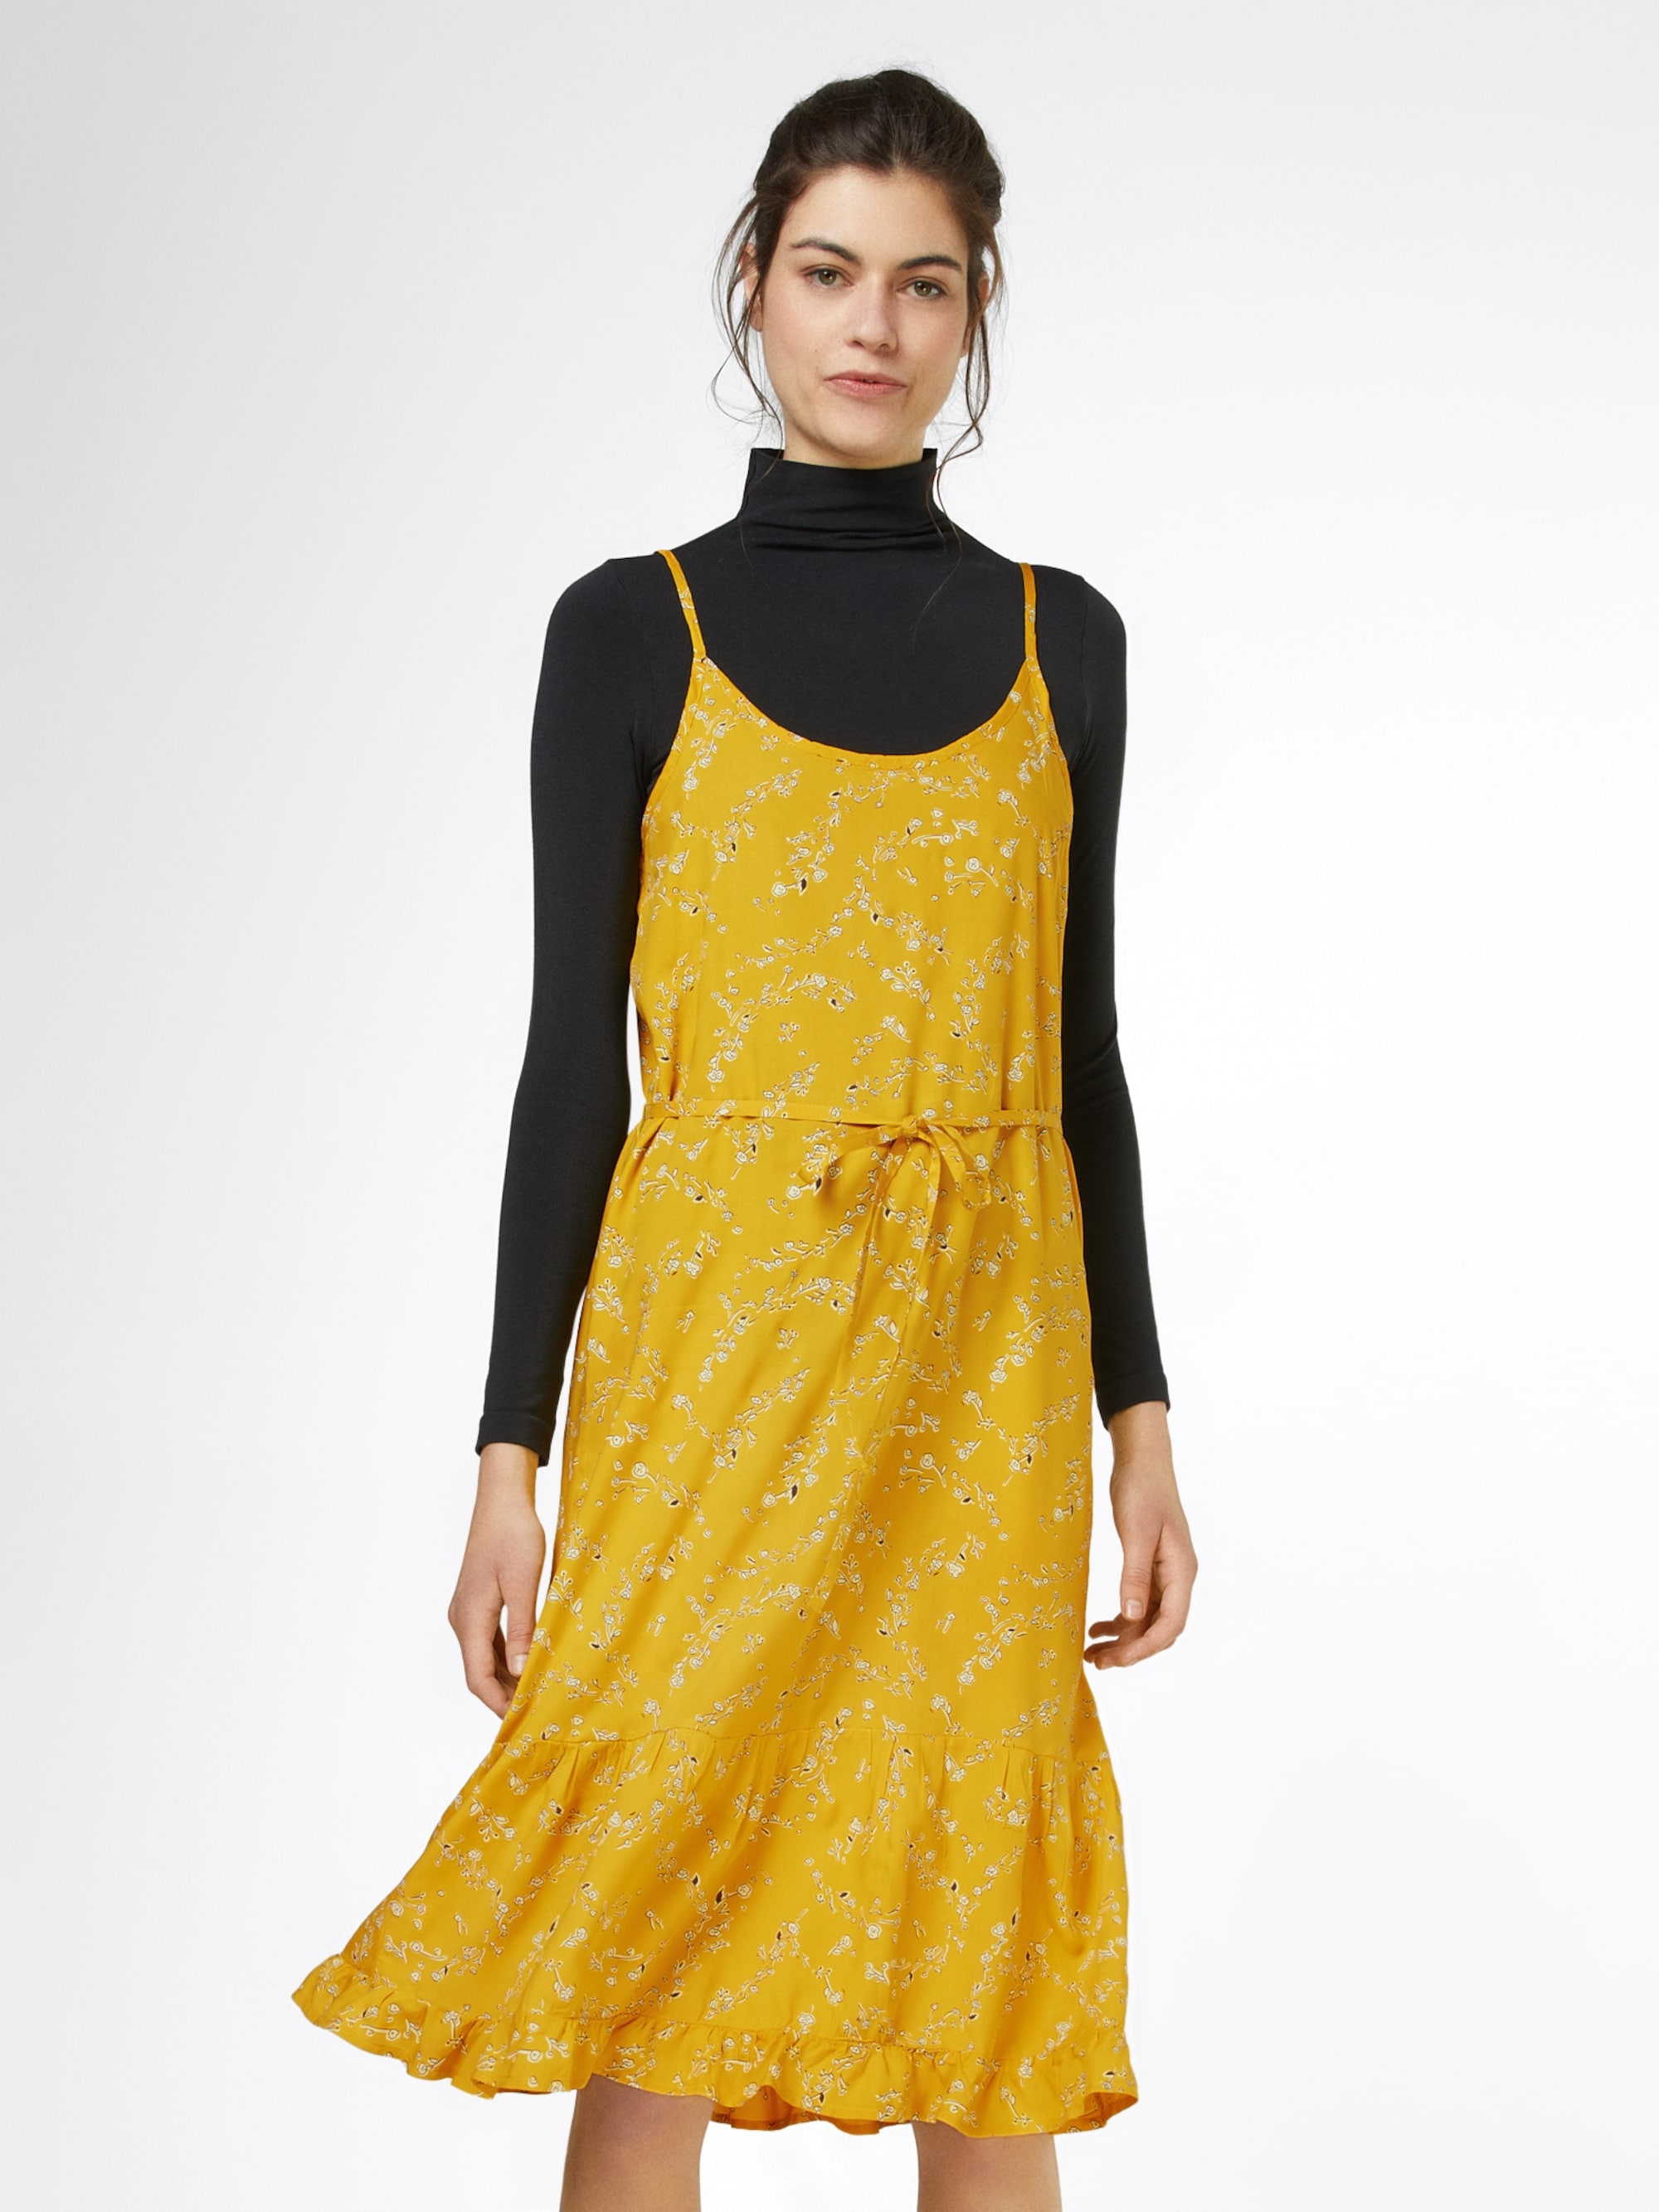 Zomerjurk 'Yellow R Dr'